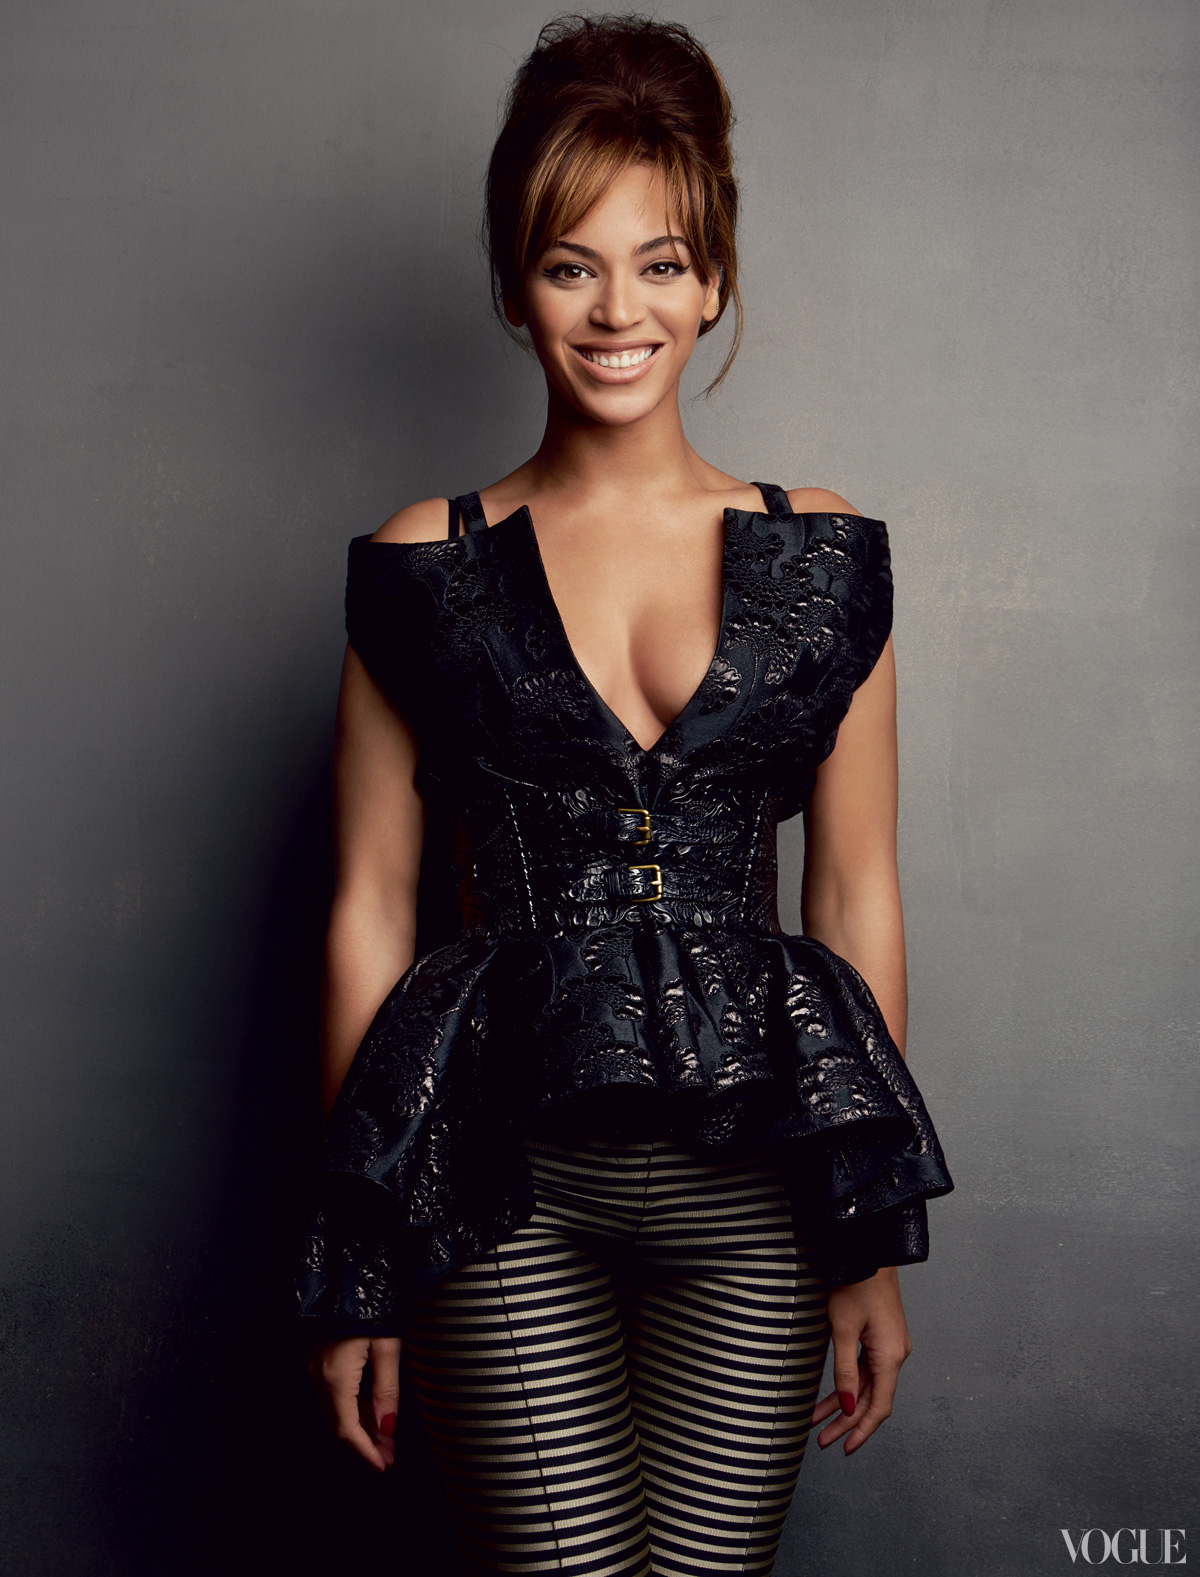 beyonce-vogue-power-issue-spread-02-christal_rock